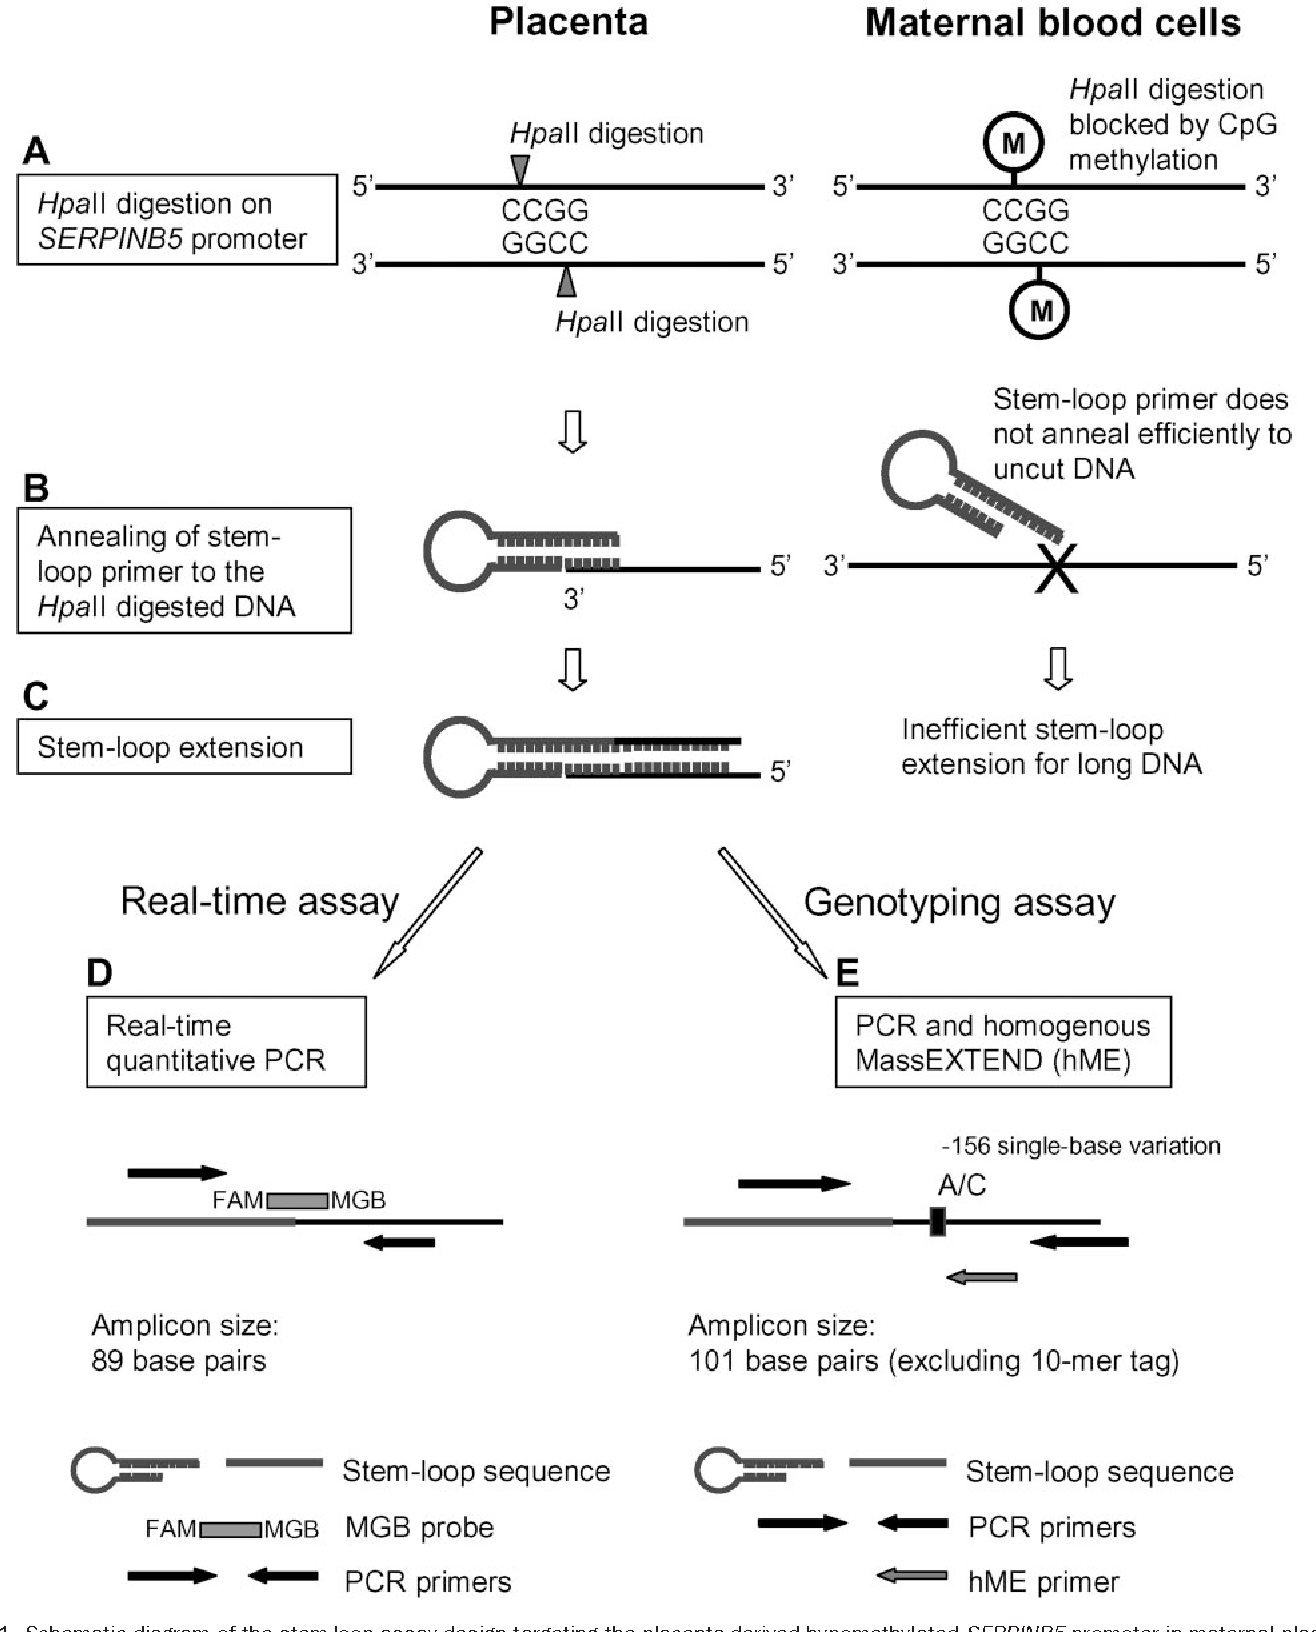 hight resolution of schematic diagram of the stem loop assay design targeting the placenta